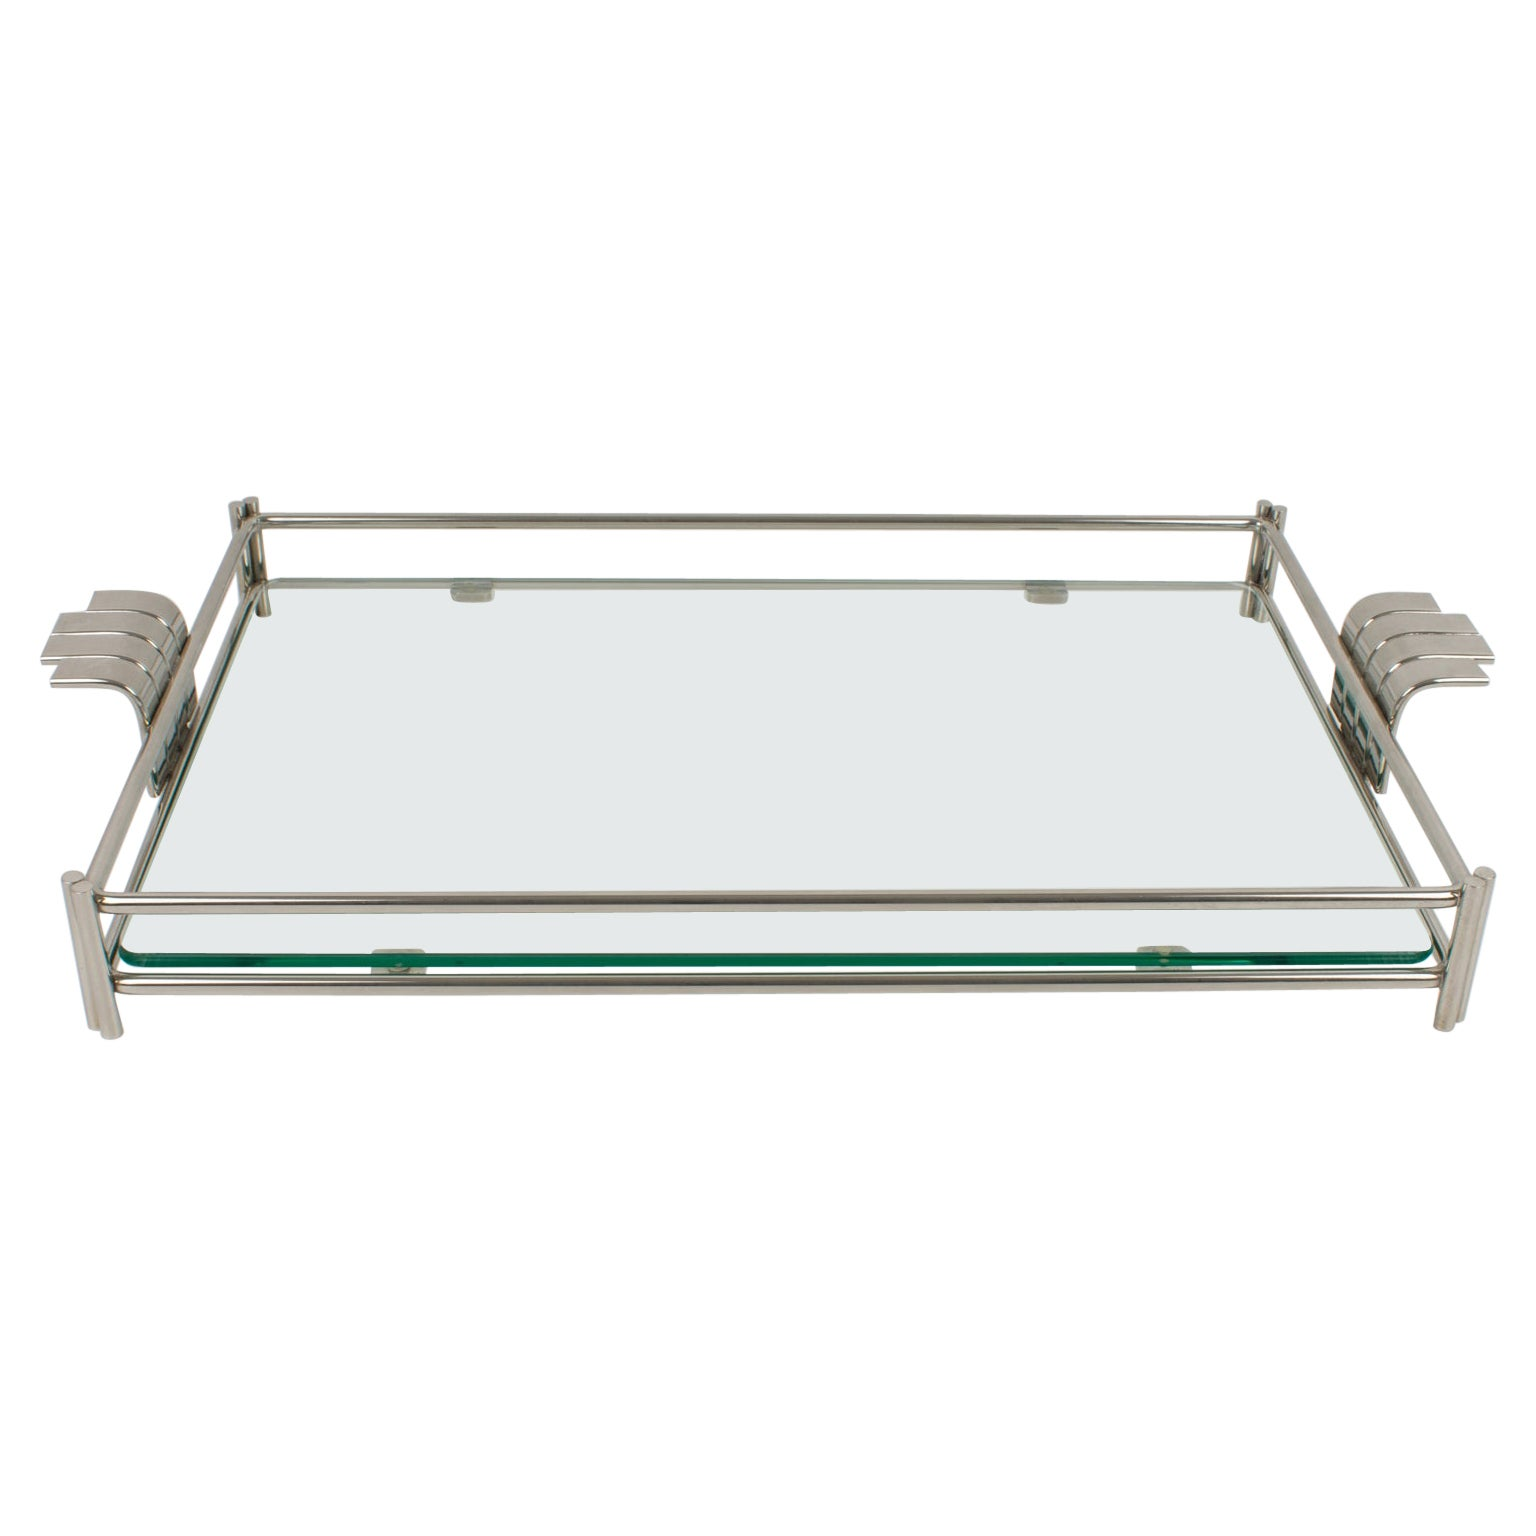 Christian Dior Barware Nickel Silver and Glass Tray